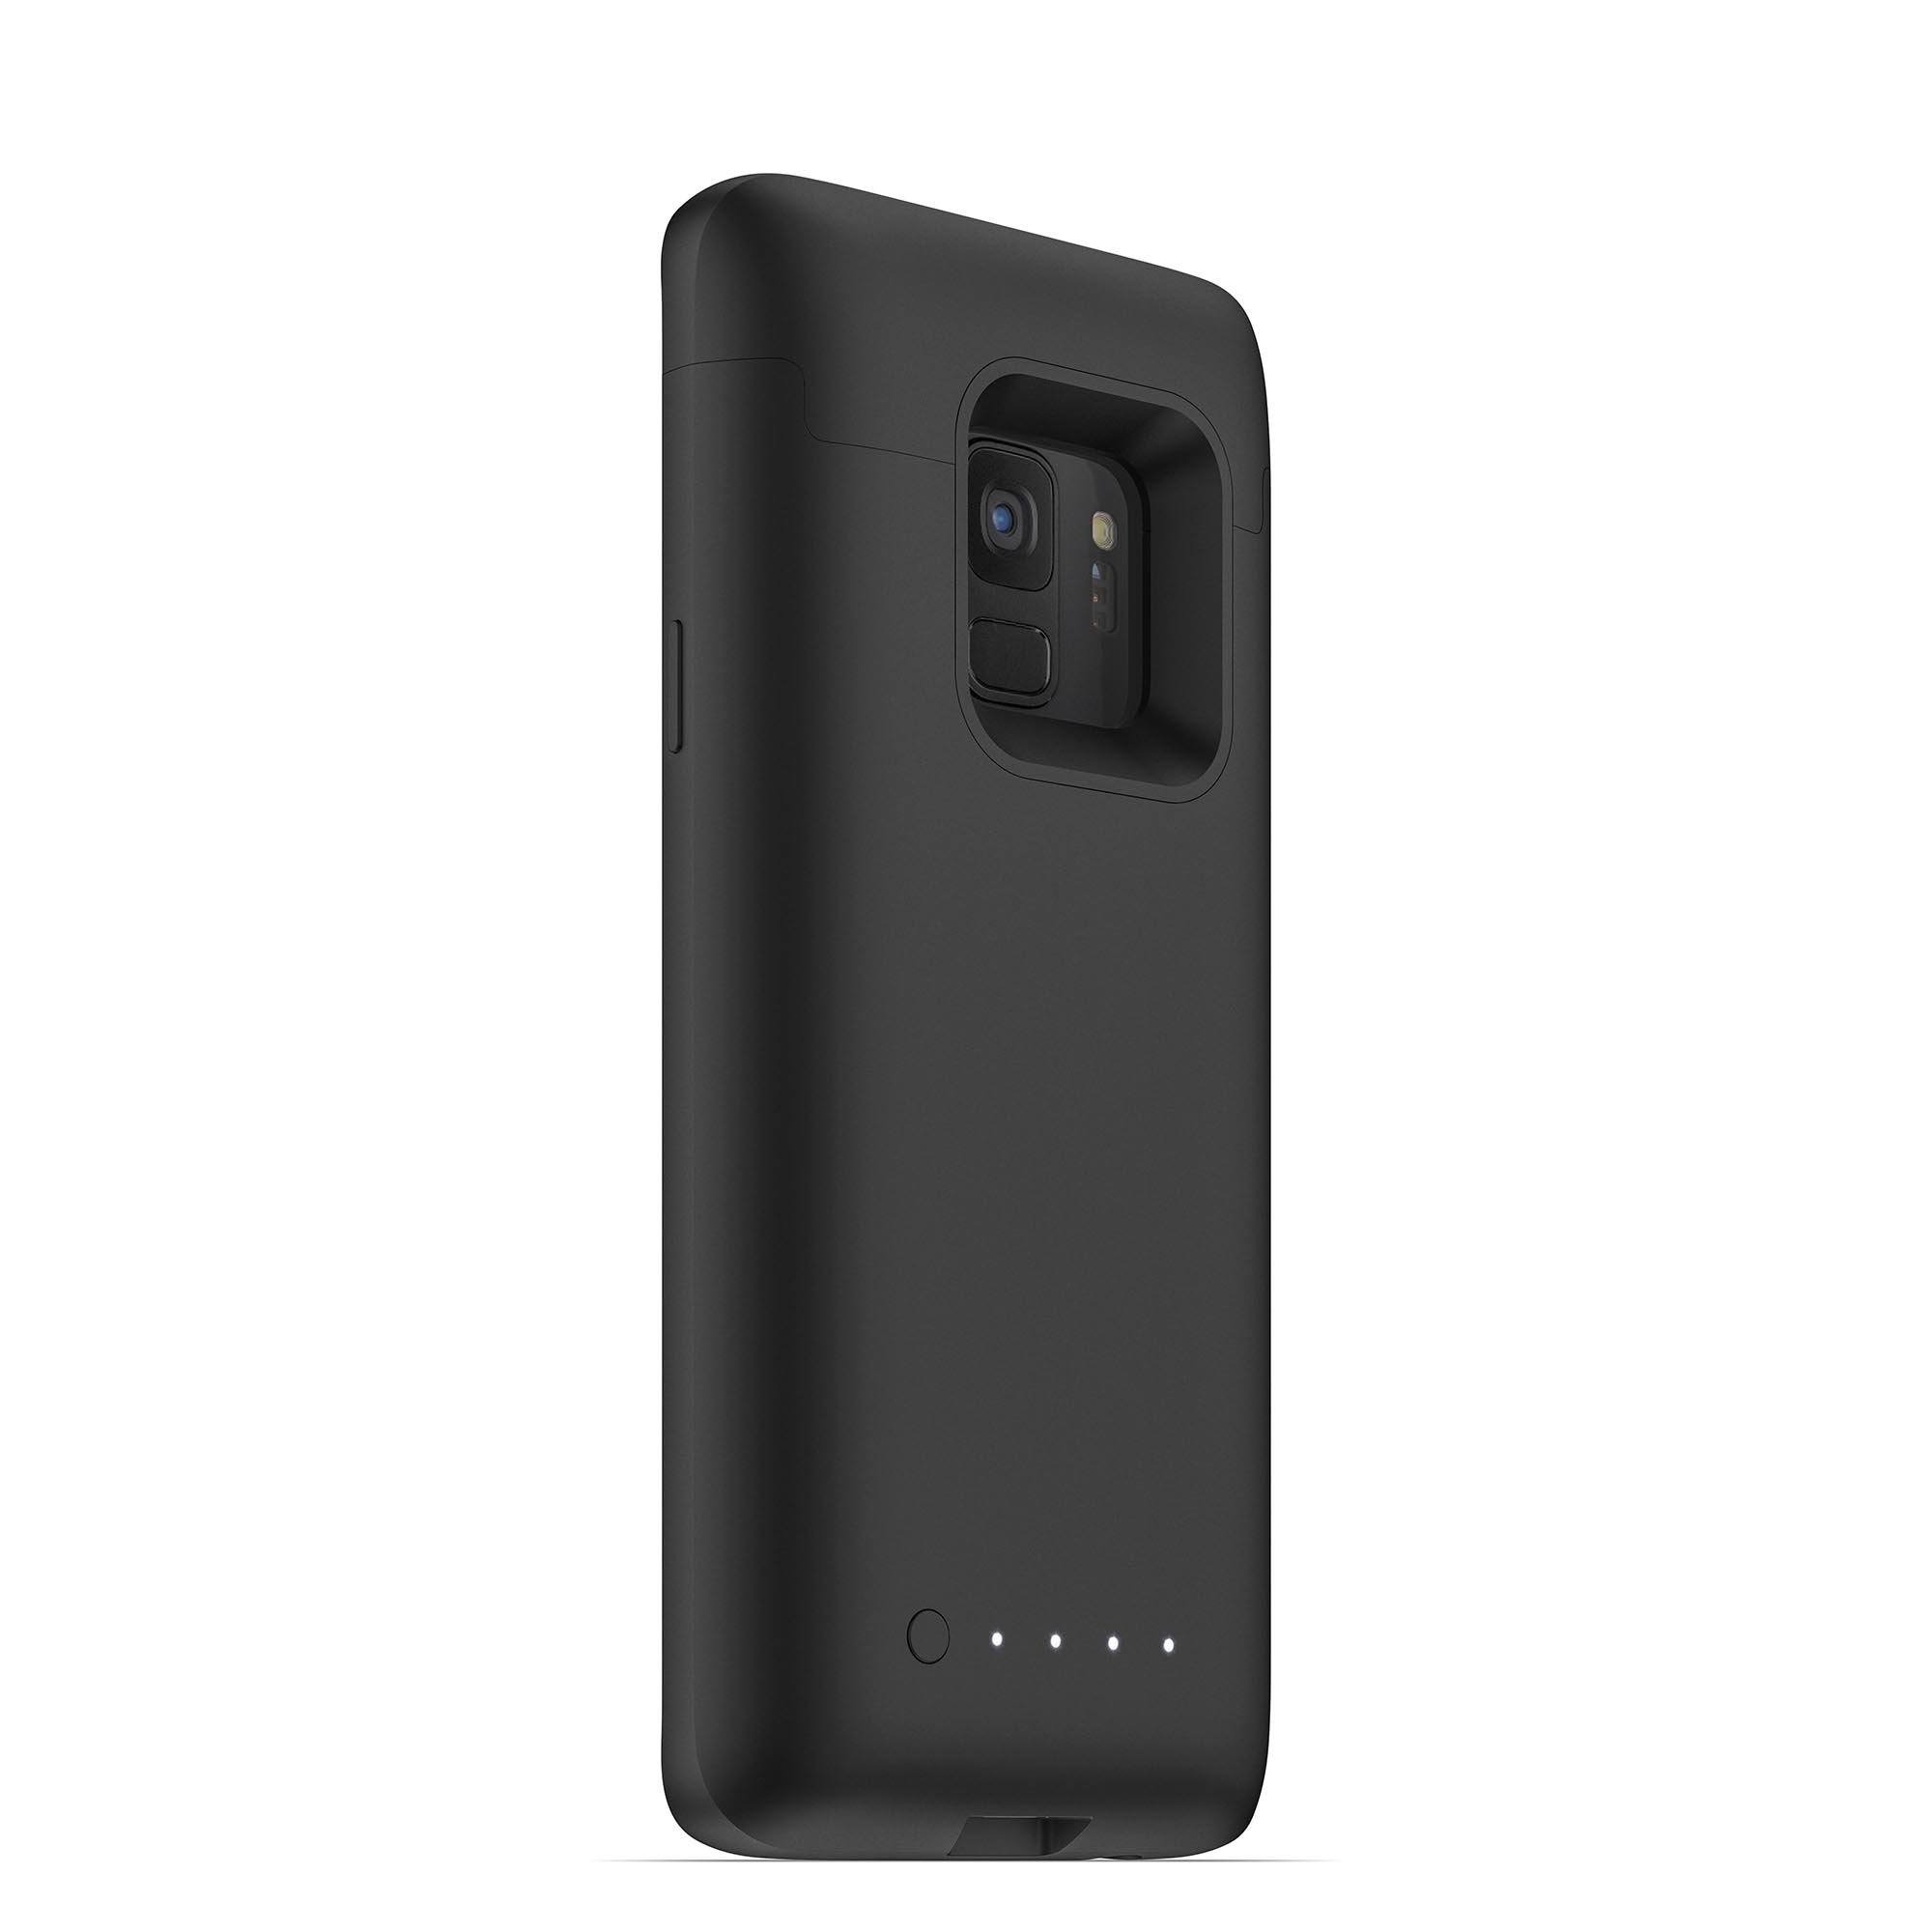 Juice Pack Made for Samsung Galaxy S9 - Wireless Charging Battery Case - Black by mophie (Image #4)